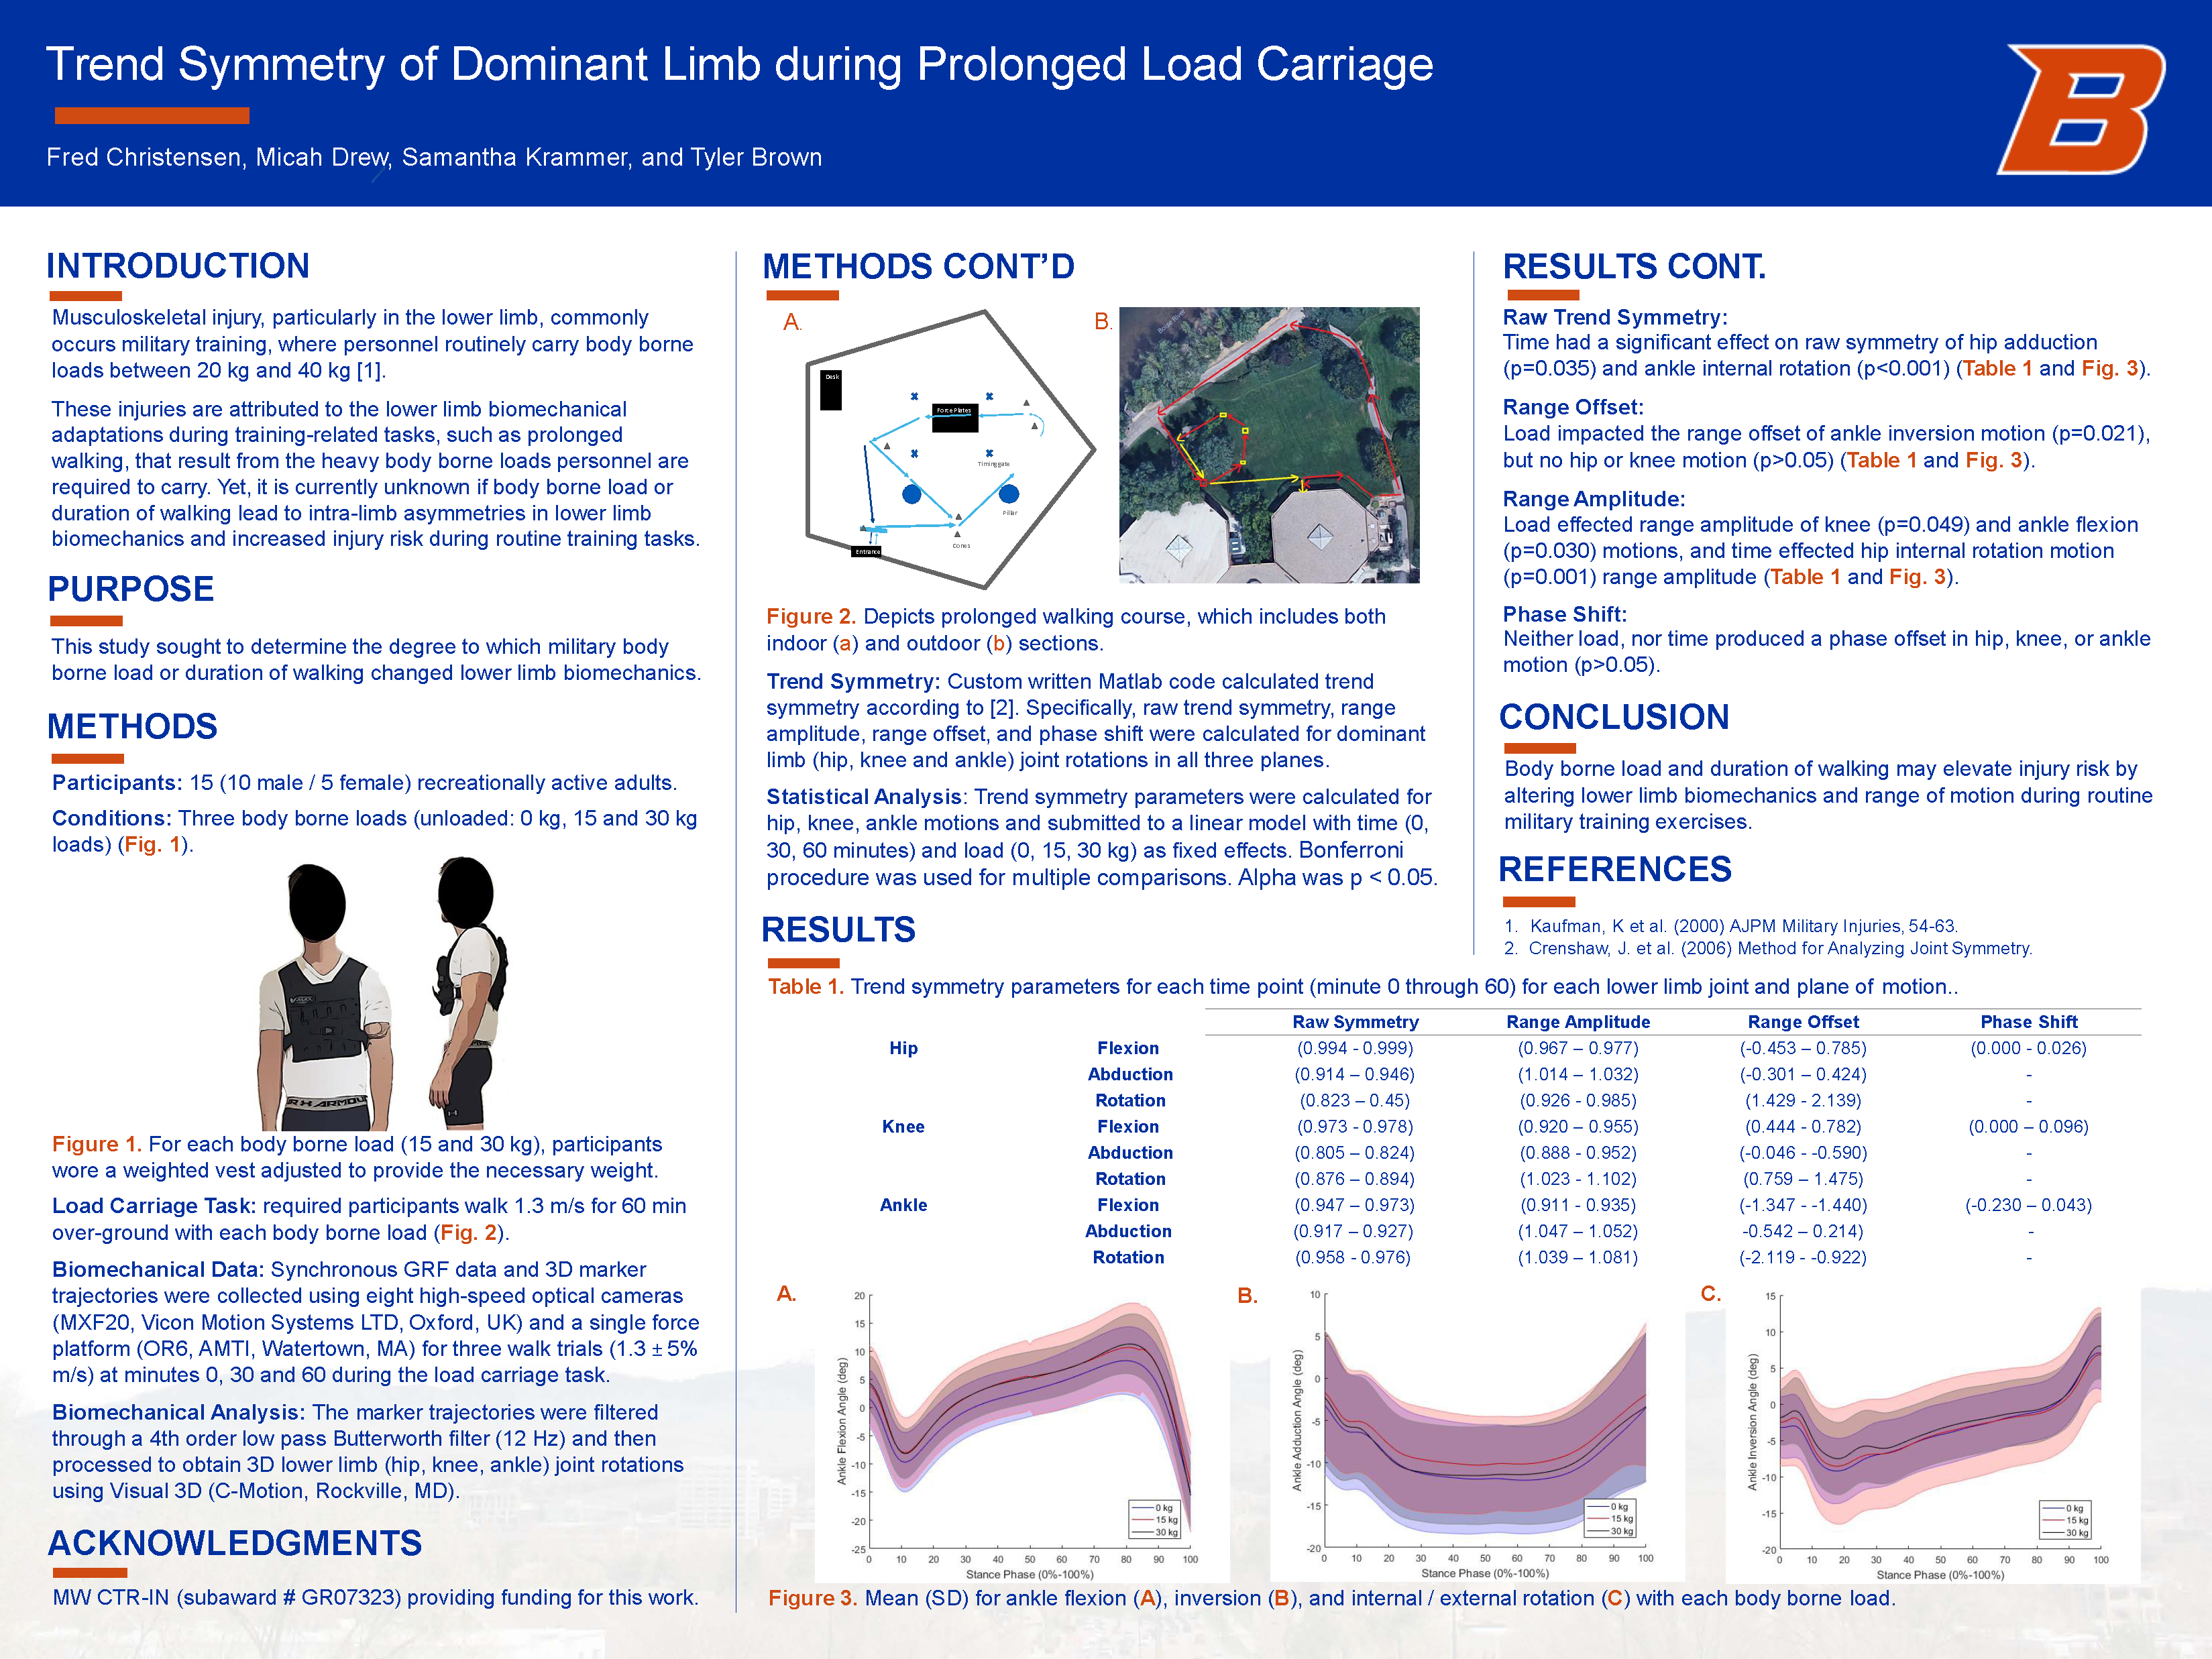 Christensen, Drew, Krammer, Brown Final Poster - view poster content on post page